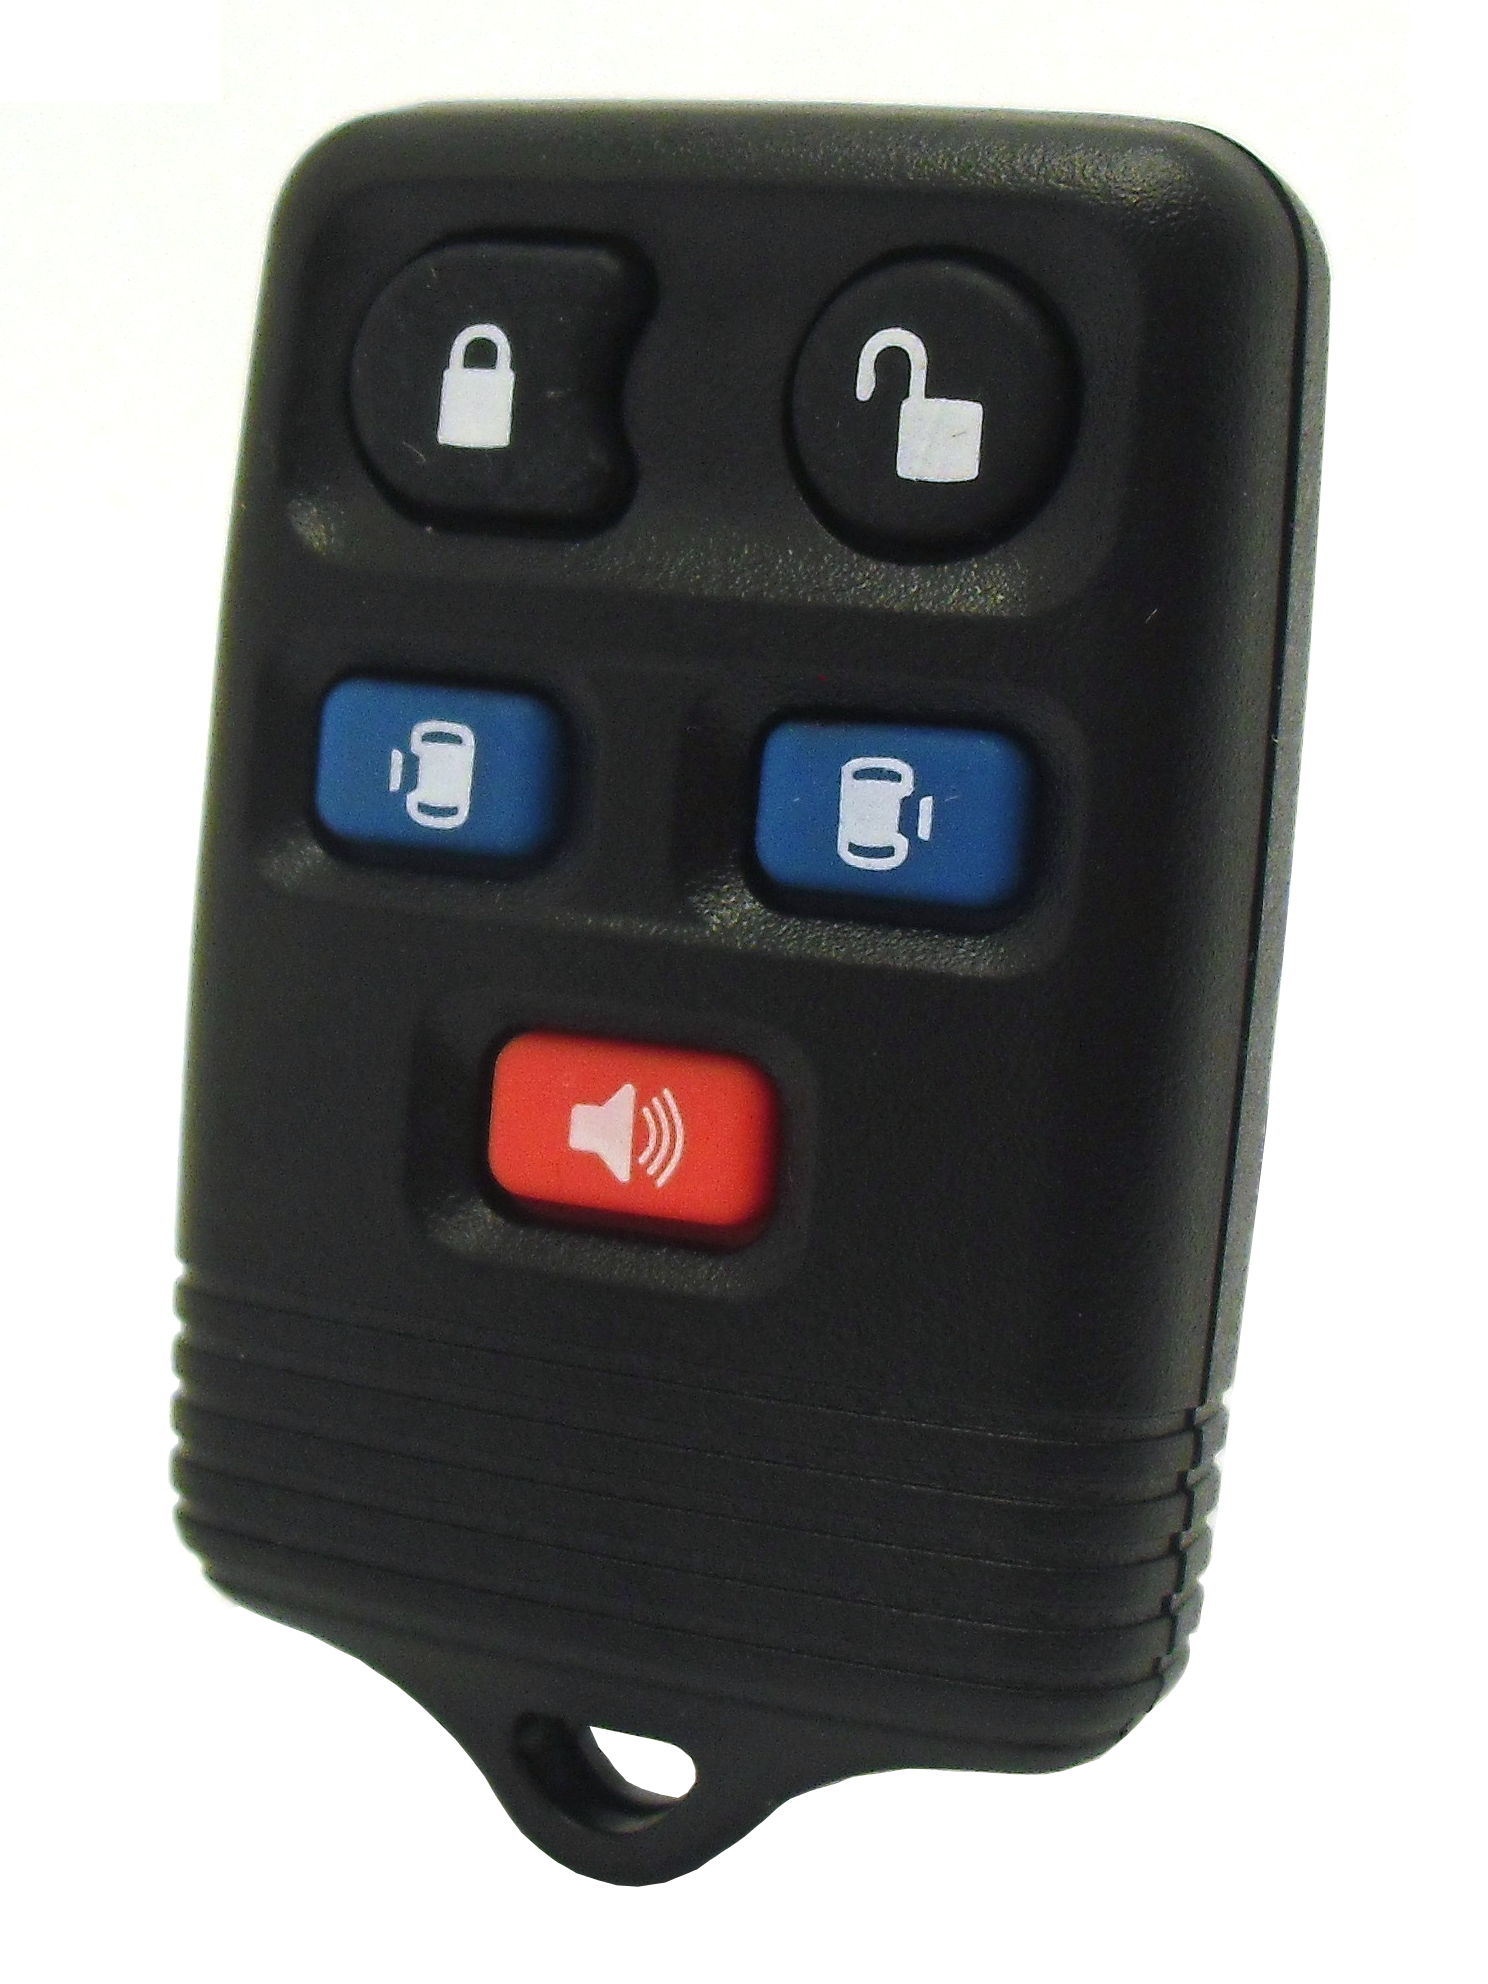 Ford / Mercury Keyless Entry Minivan Remote - 5 Button